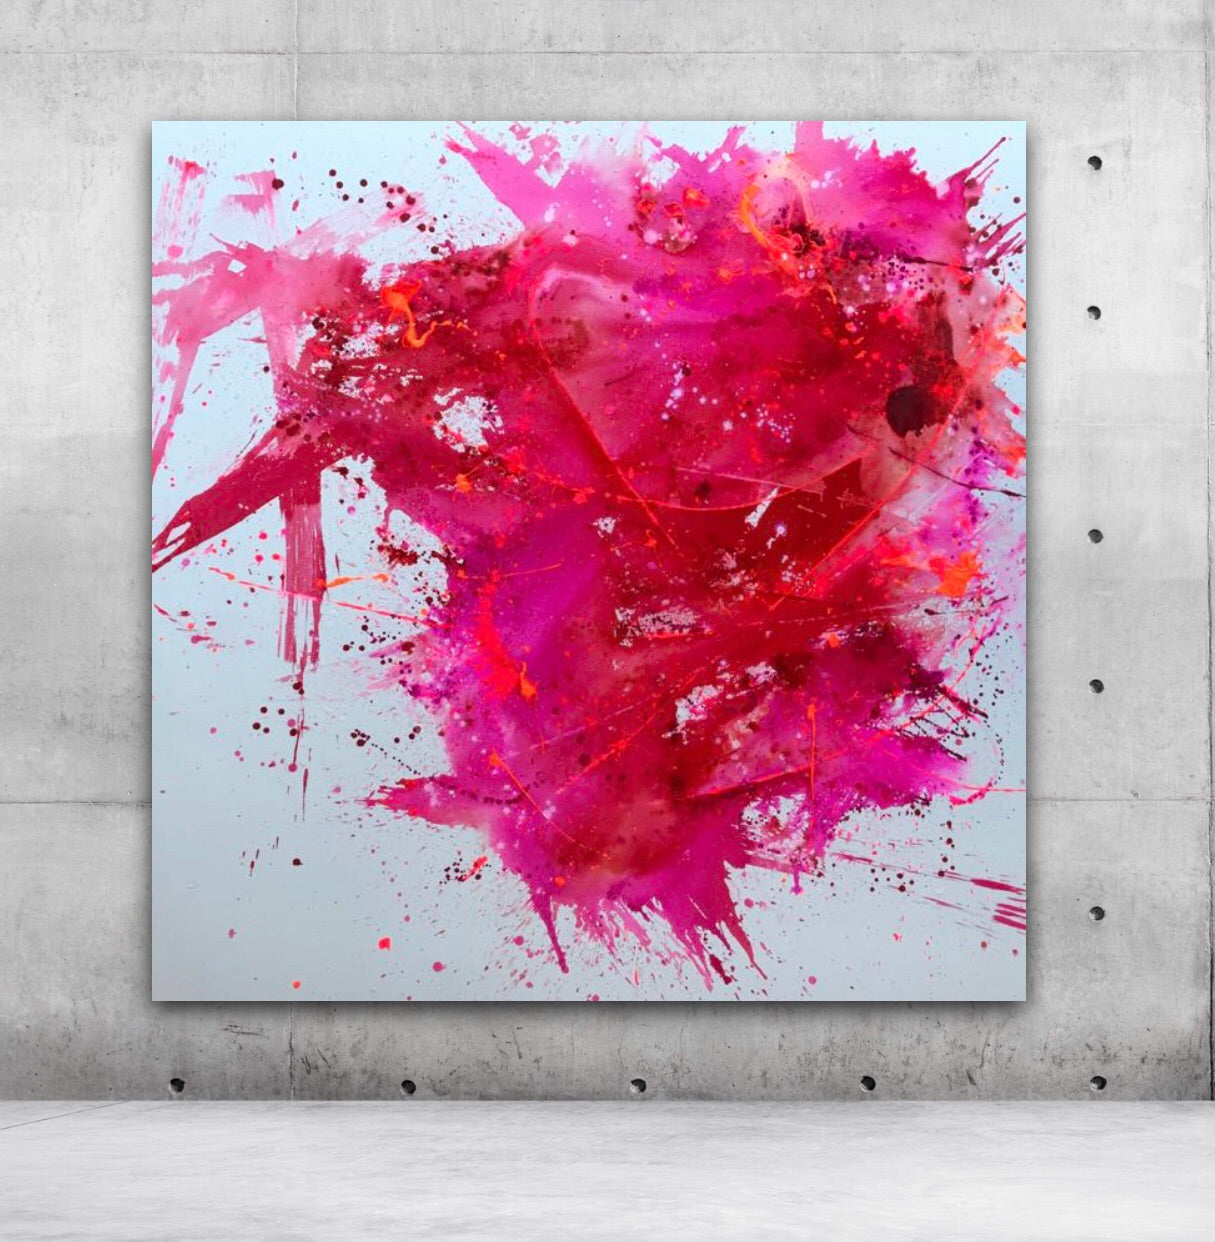 Crazy Pink Love | Original Artwork on Canvas